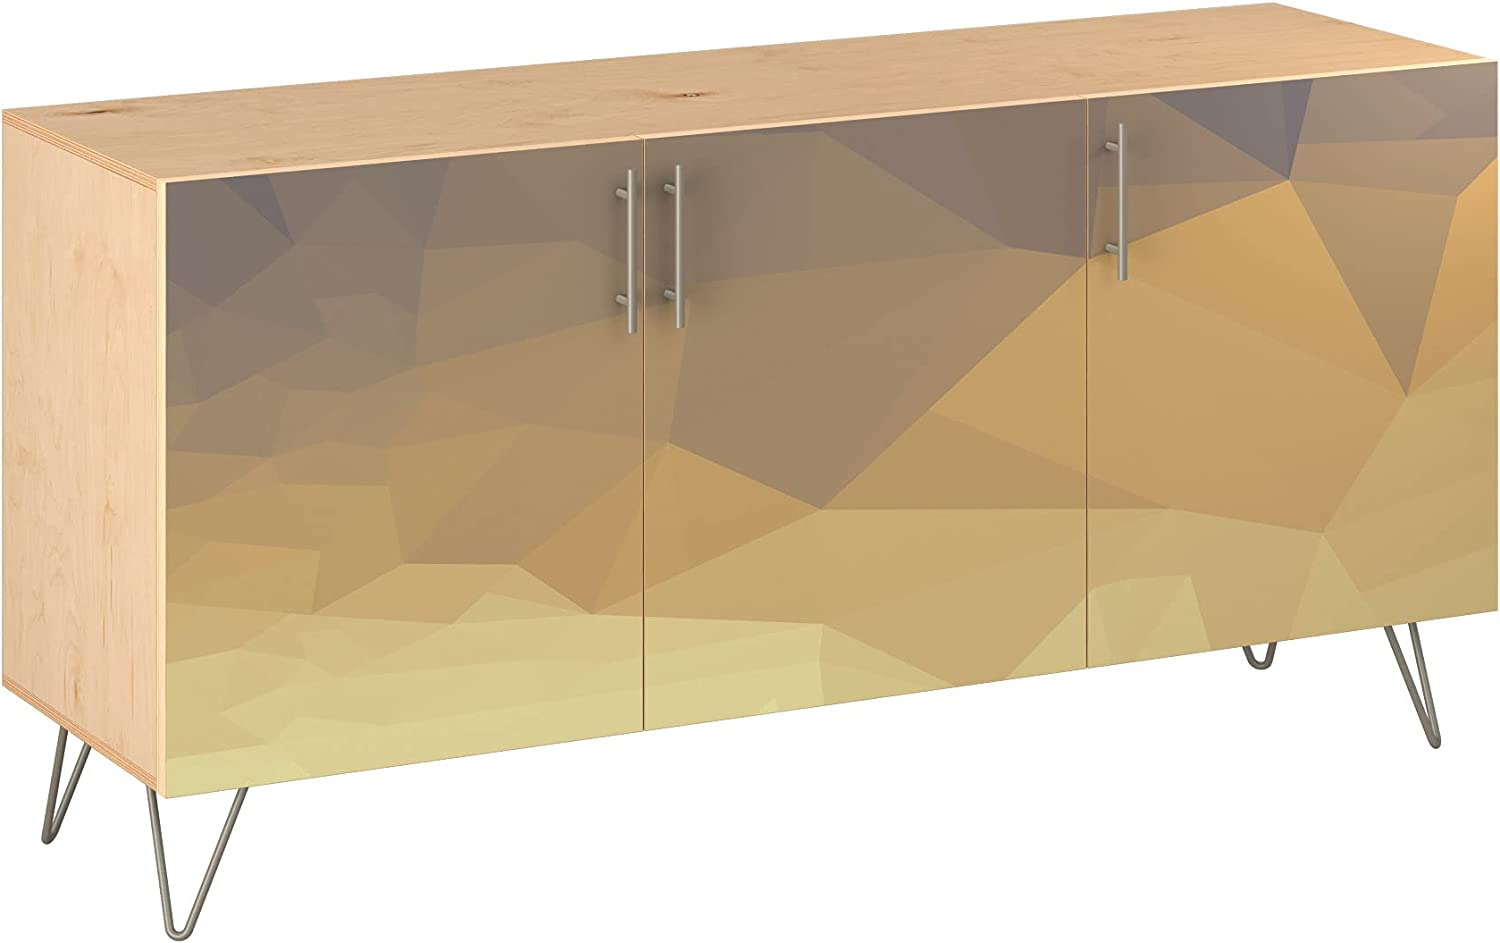 Poppy Sideboard - Natural Velma Design 5 Daily bargain sale Sty Colors Base 11 Direct stock discount in